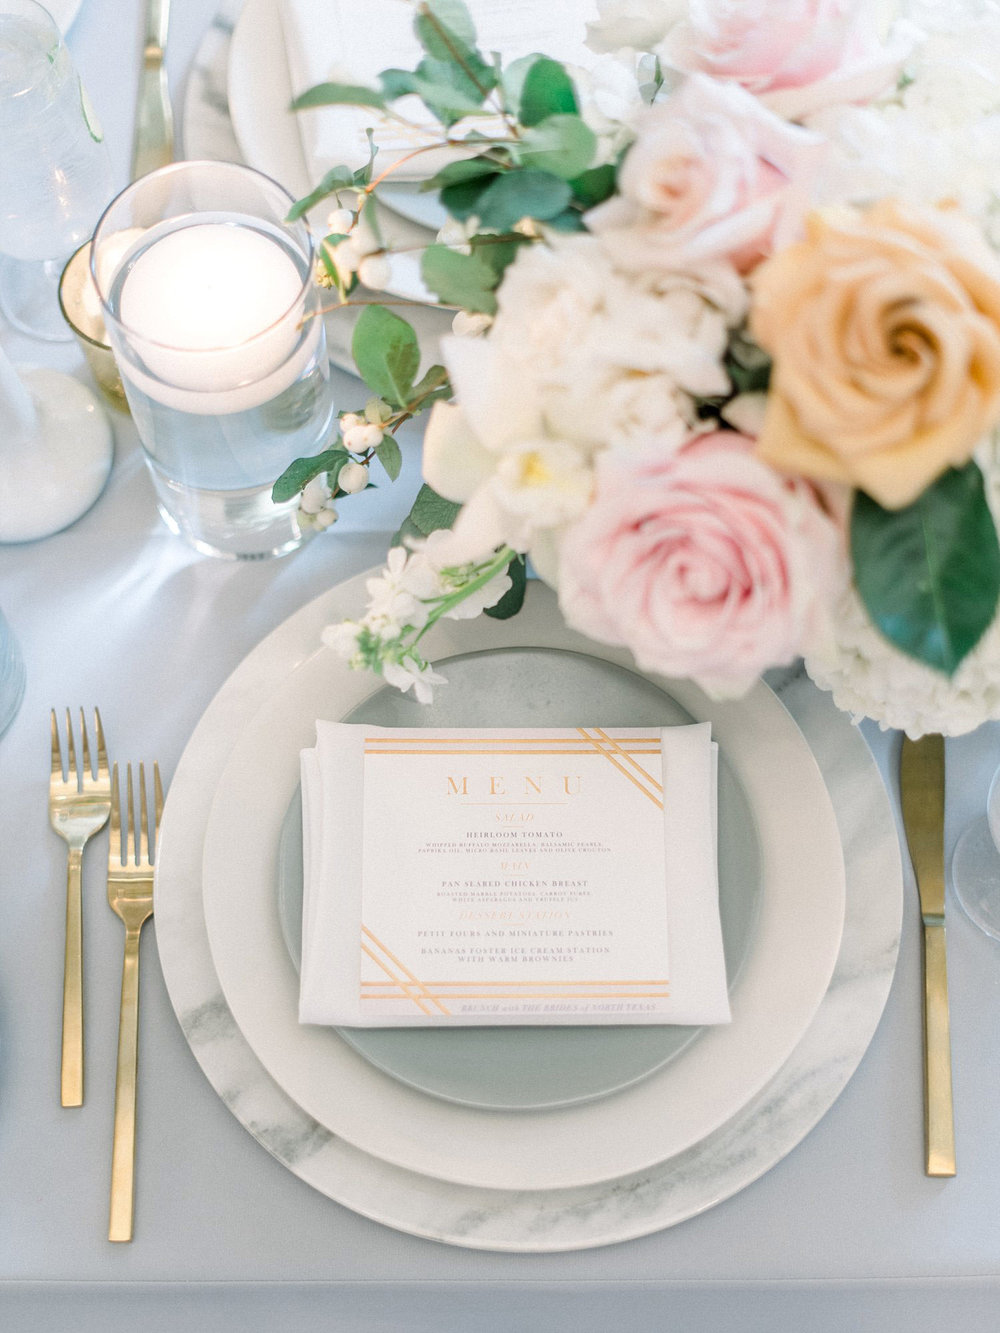 Place setting with marble charger and gold silverware